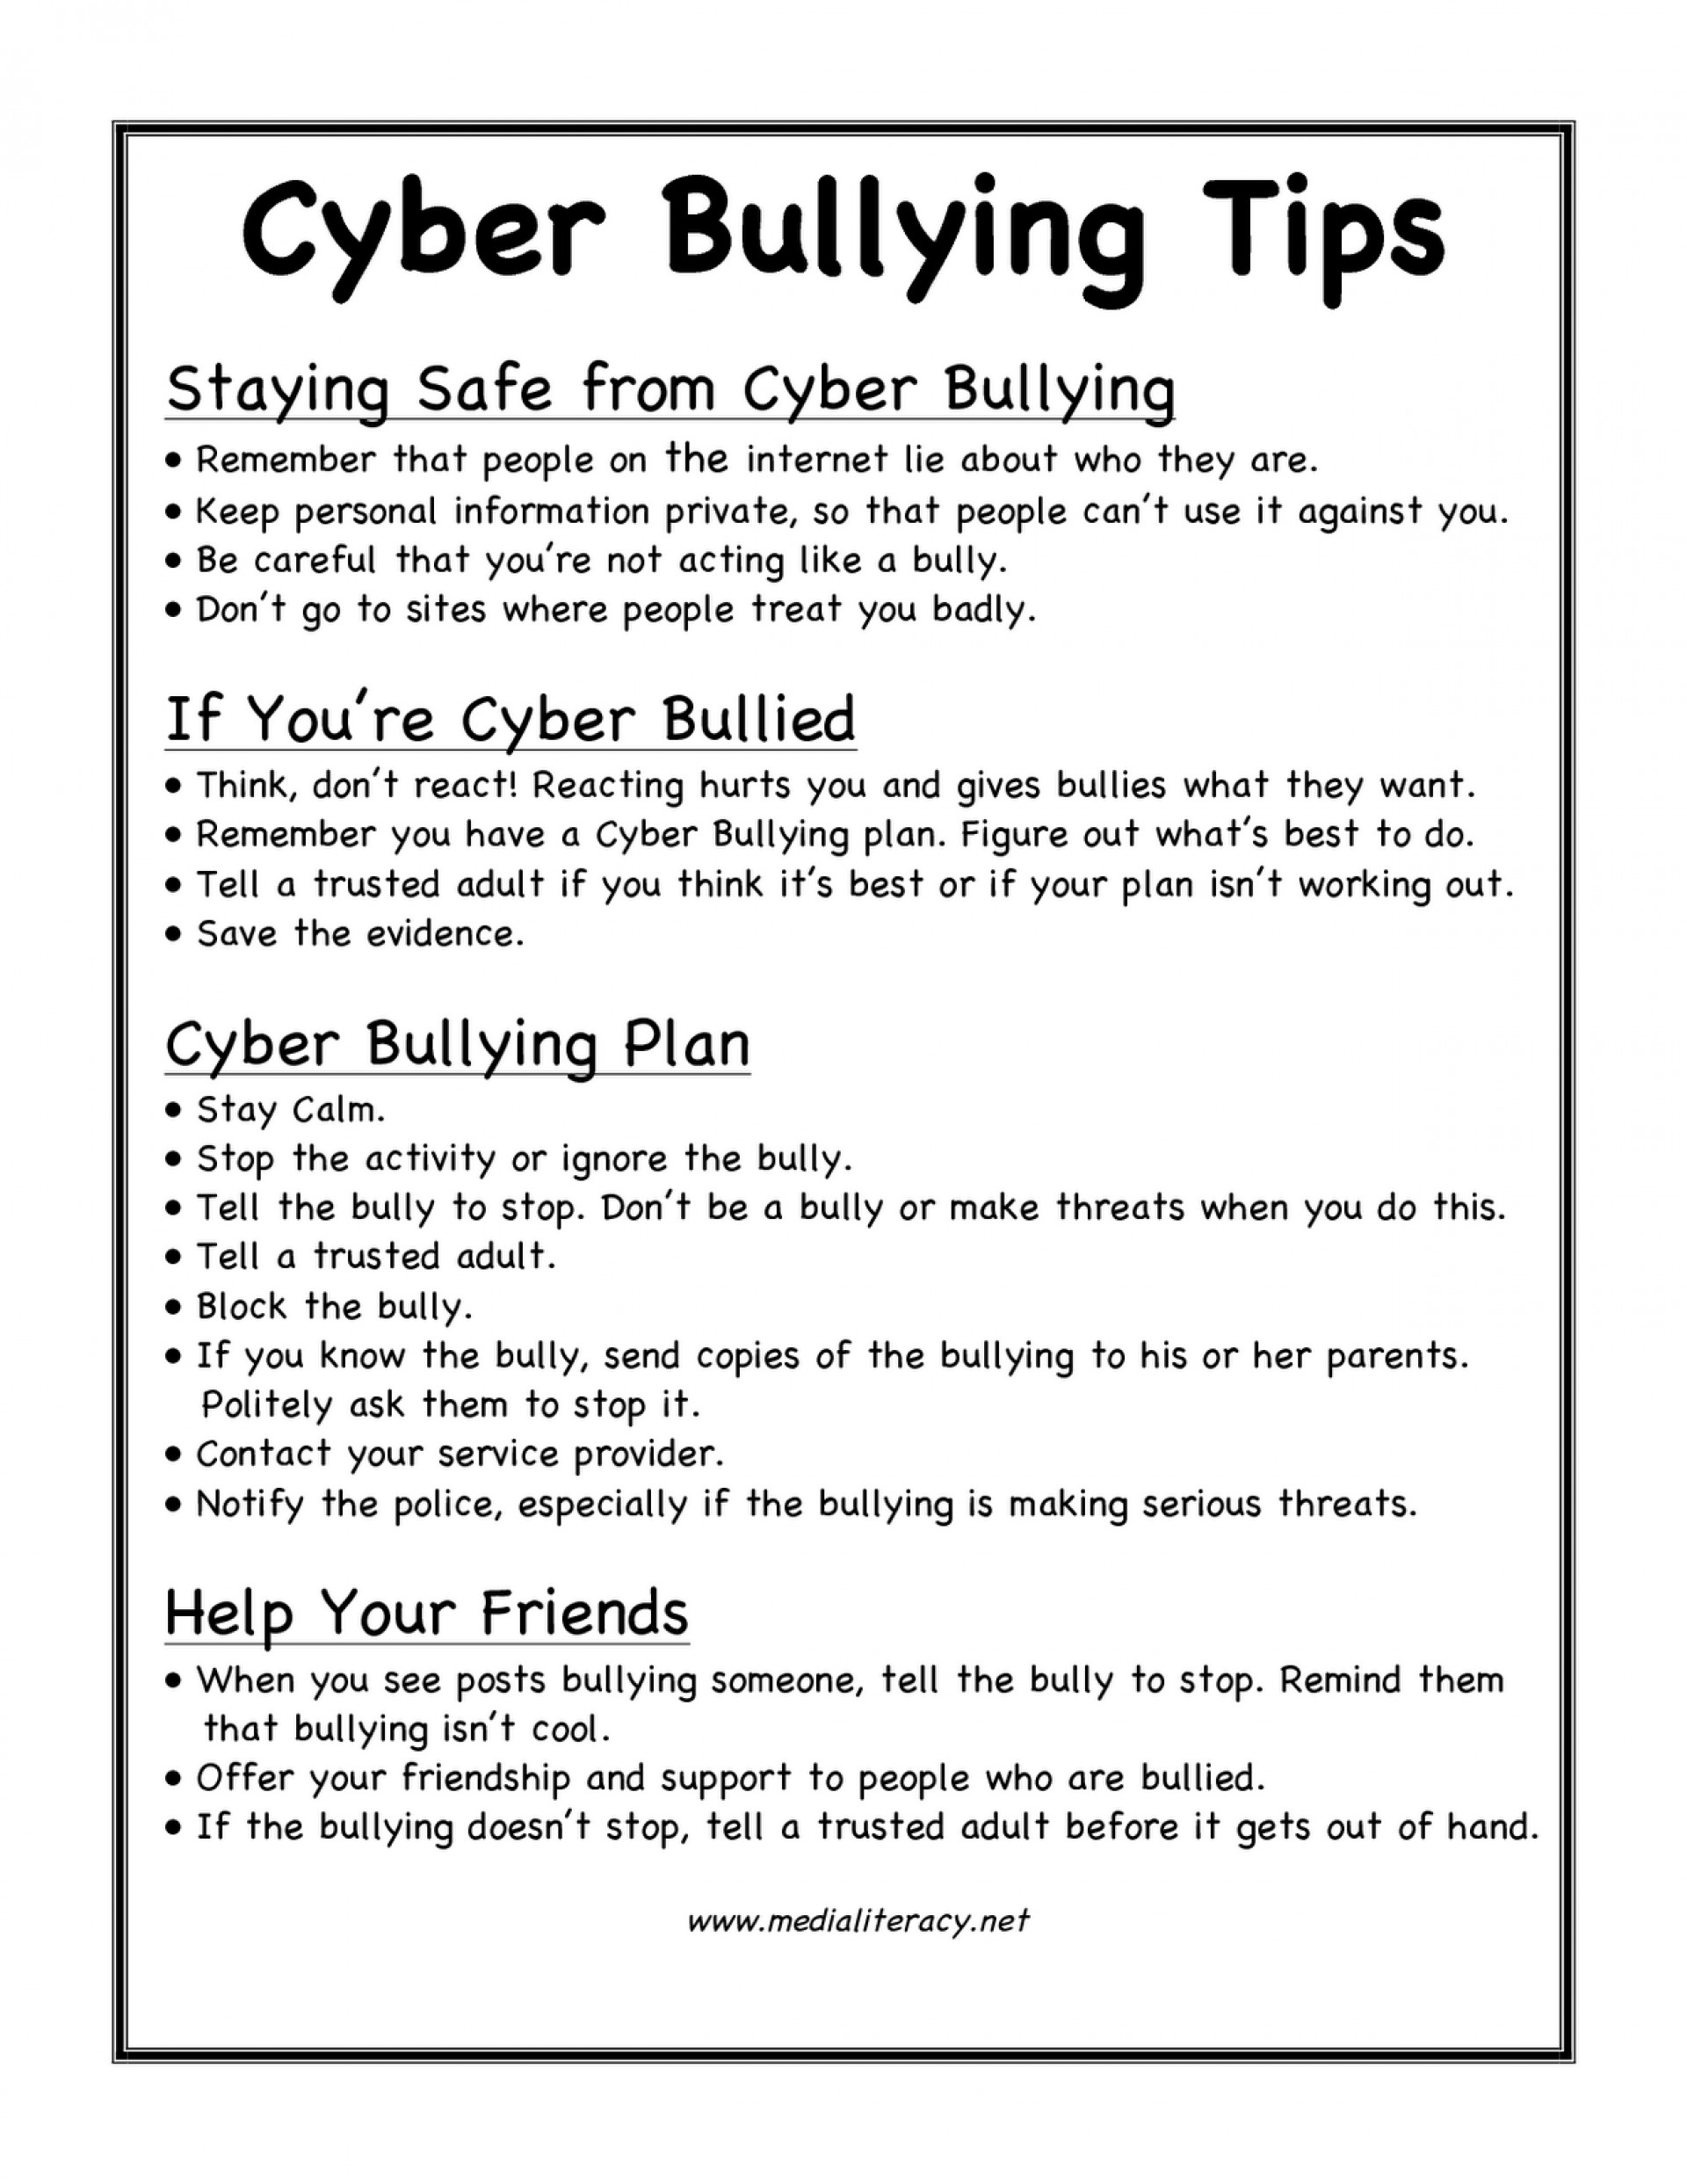 003 Cyberbullying Worksheets 424901 Essay Beautiful Conclusion Paragraph On Cyber Bullying Argumentative Topics 1920